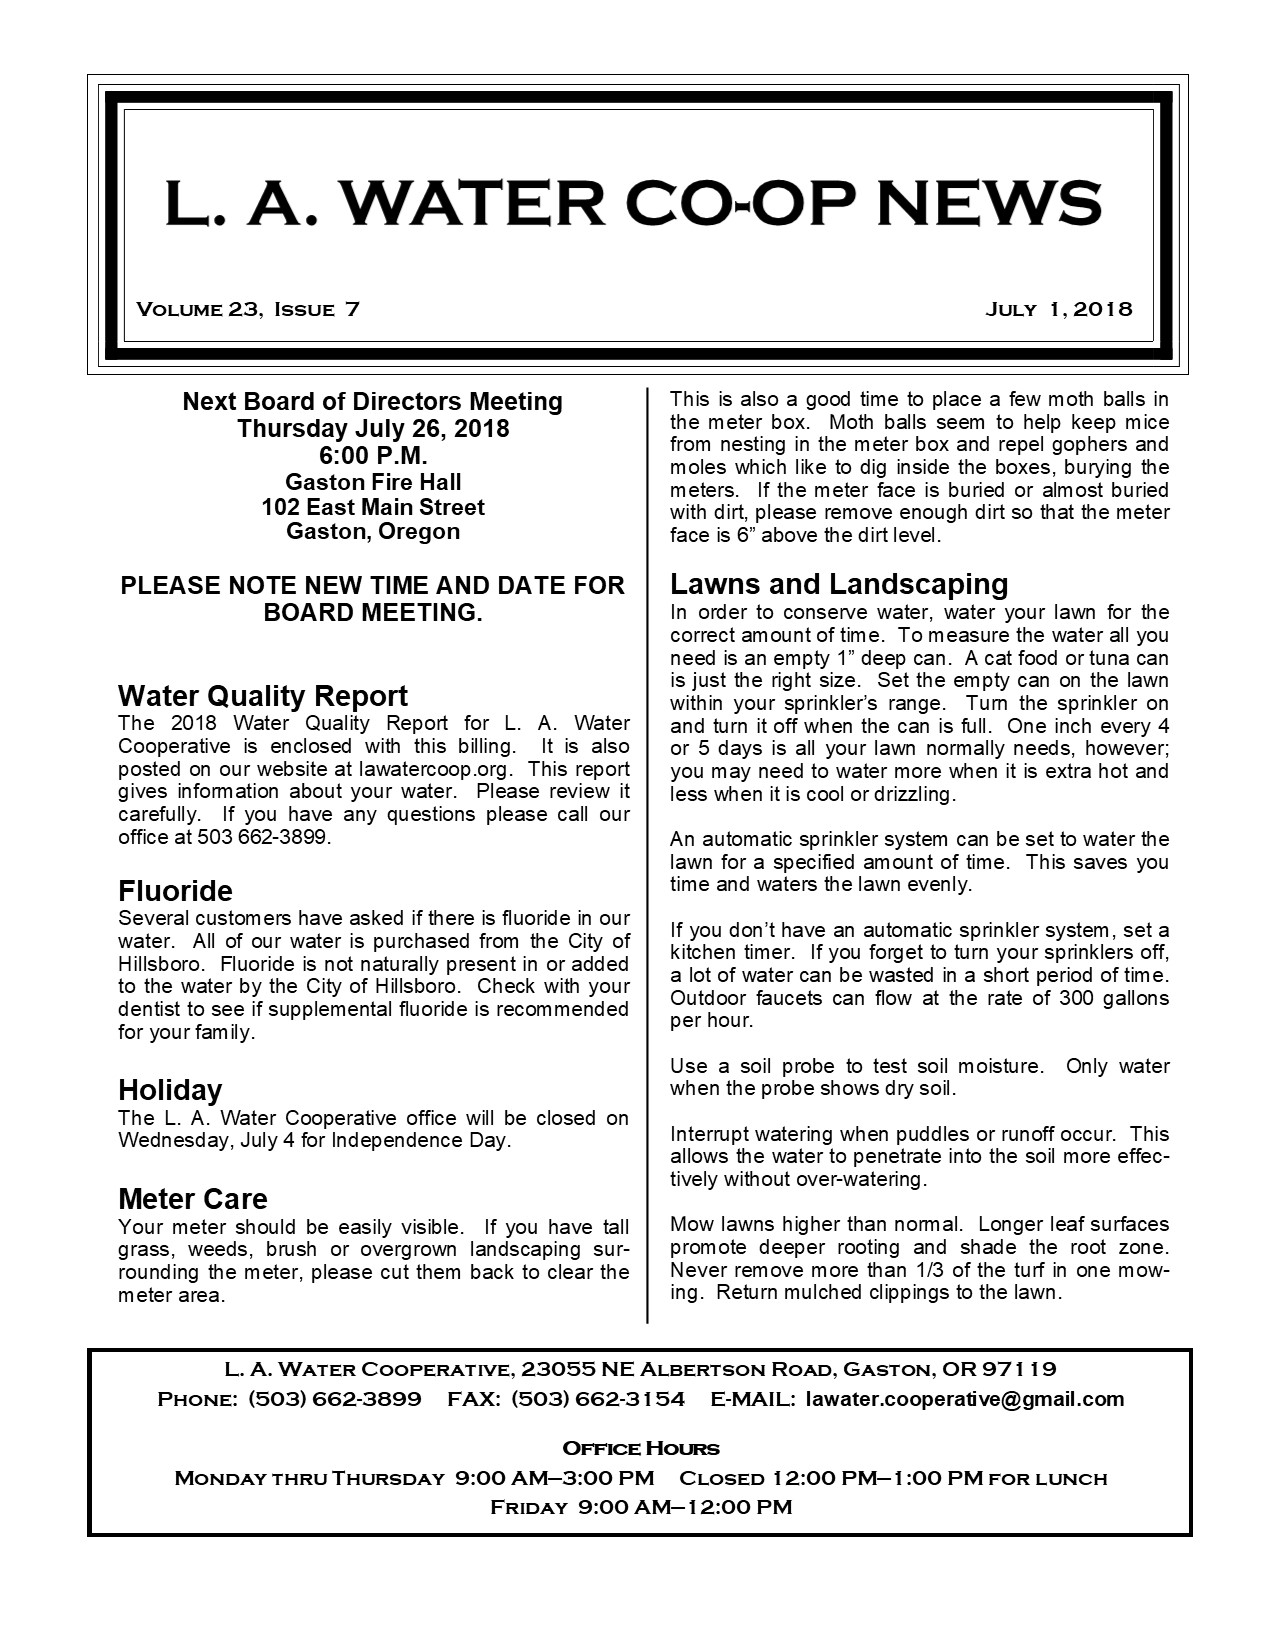 Co-Op News by Month – L  A  WATER COOPERATIVE